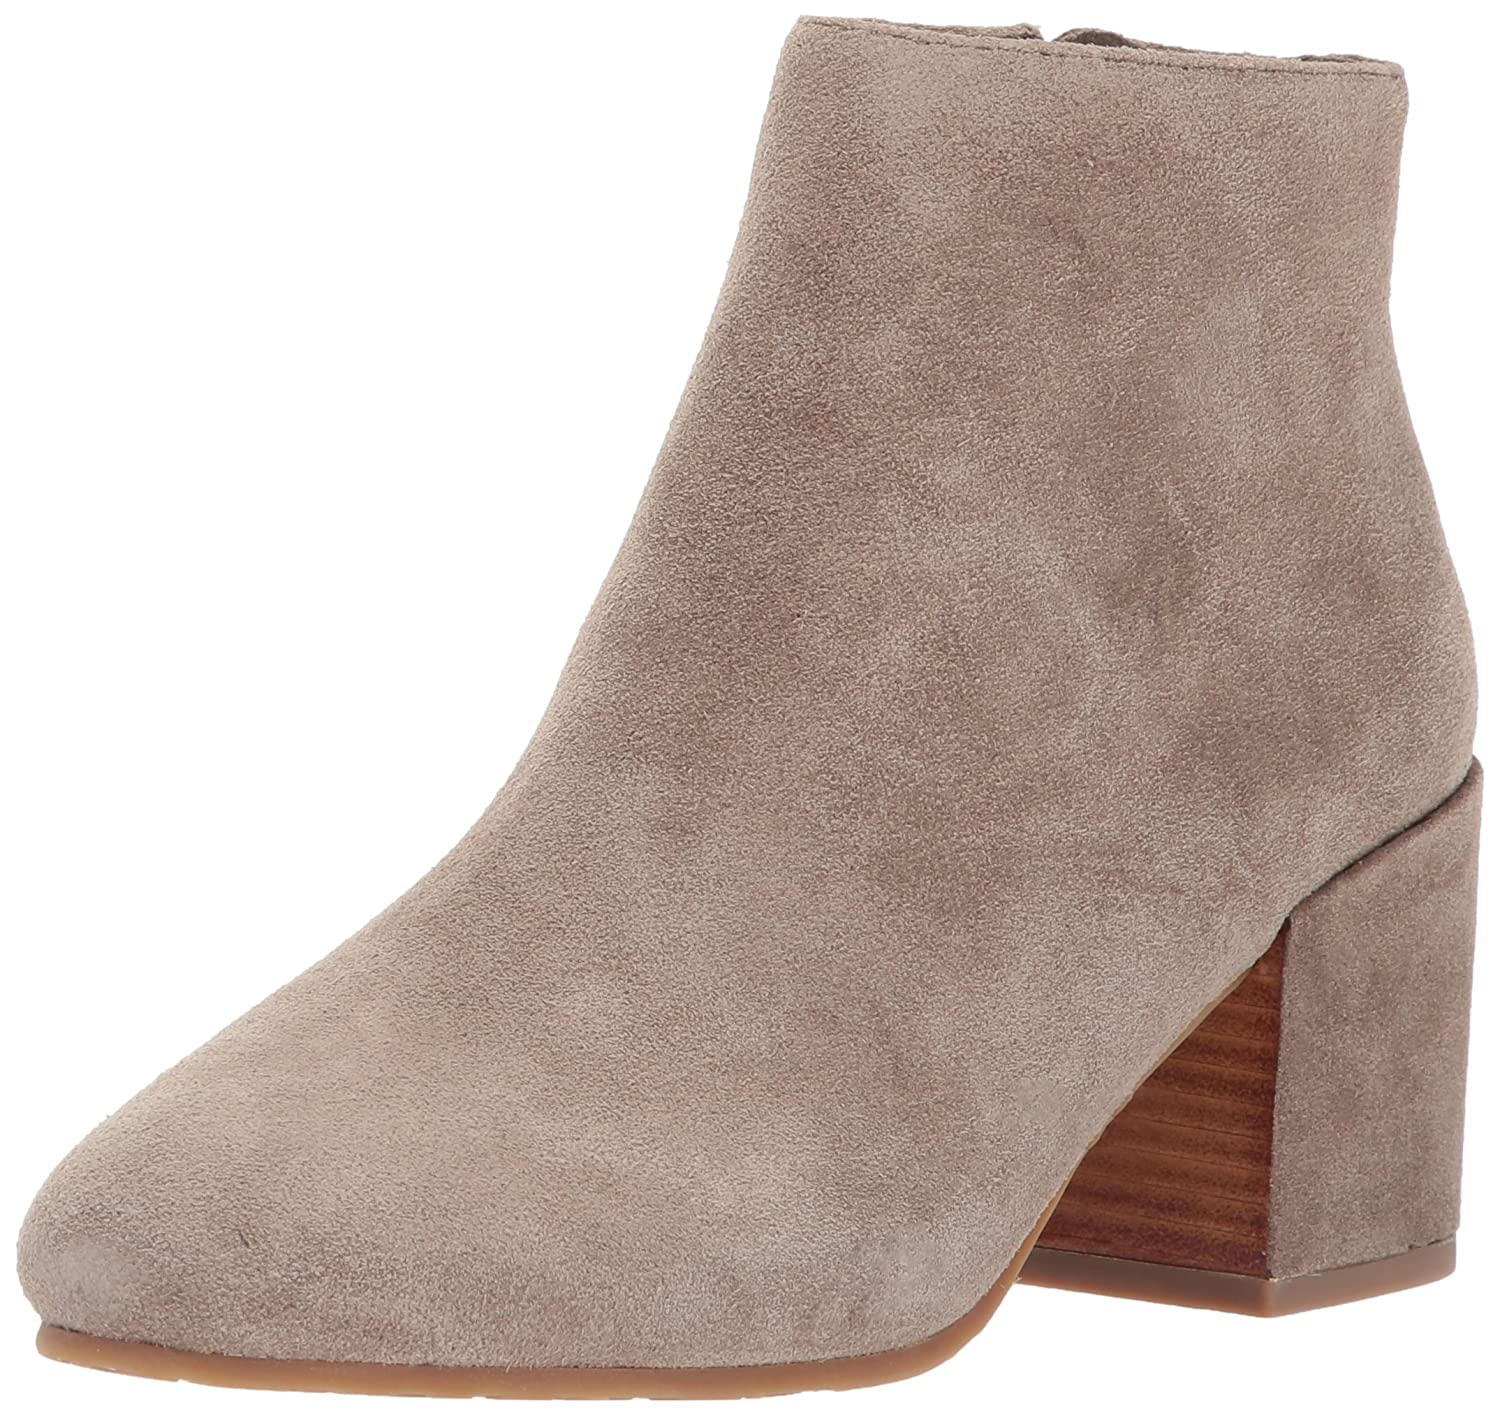 Gentle Souls by Kenneth Cole Women's Blaise Ankle Bootie with Side Zip, Covered Block Heel Suede Ankle Bootie B06XX83WH2 7 B(M) US|Sage